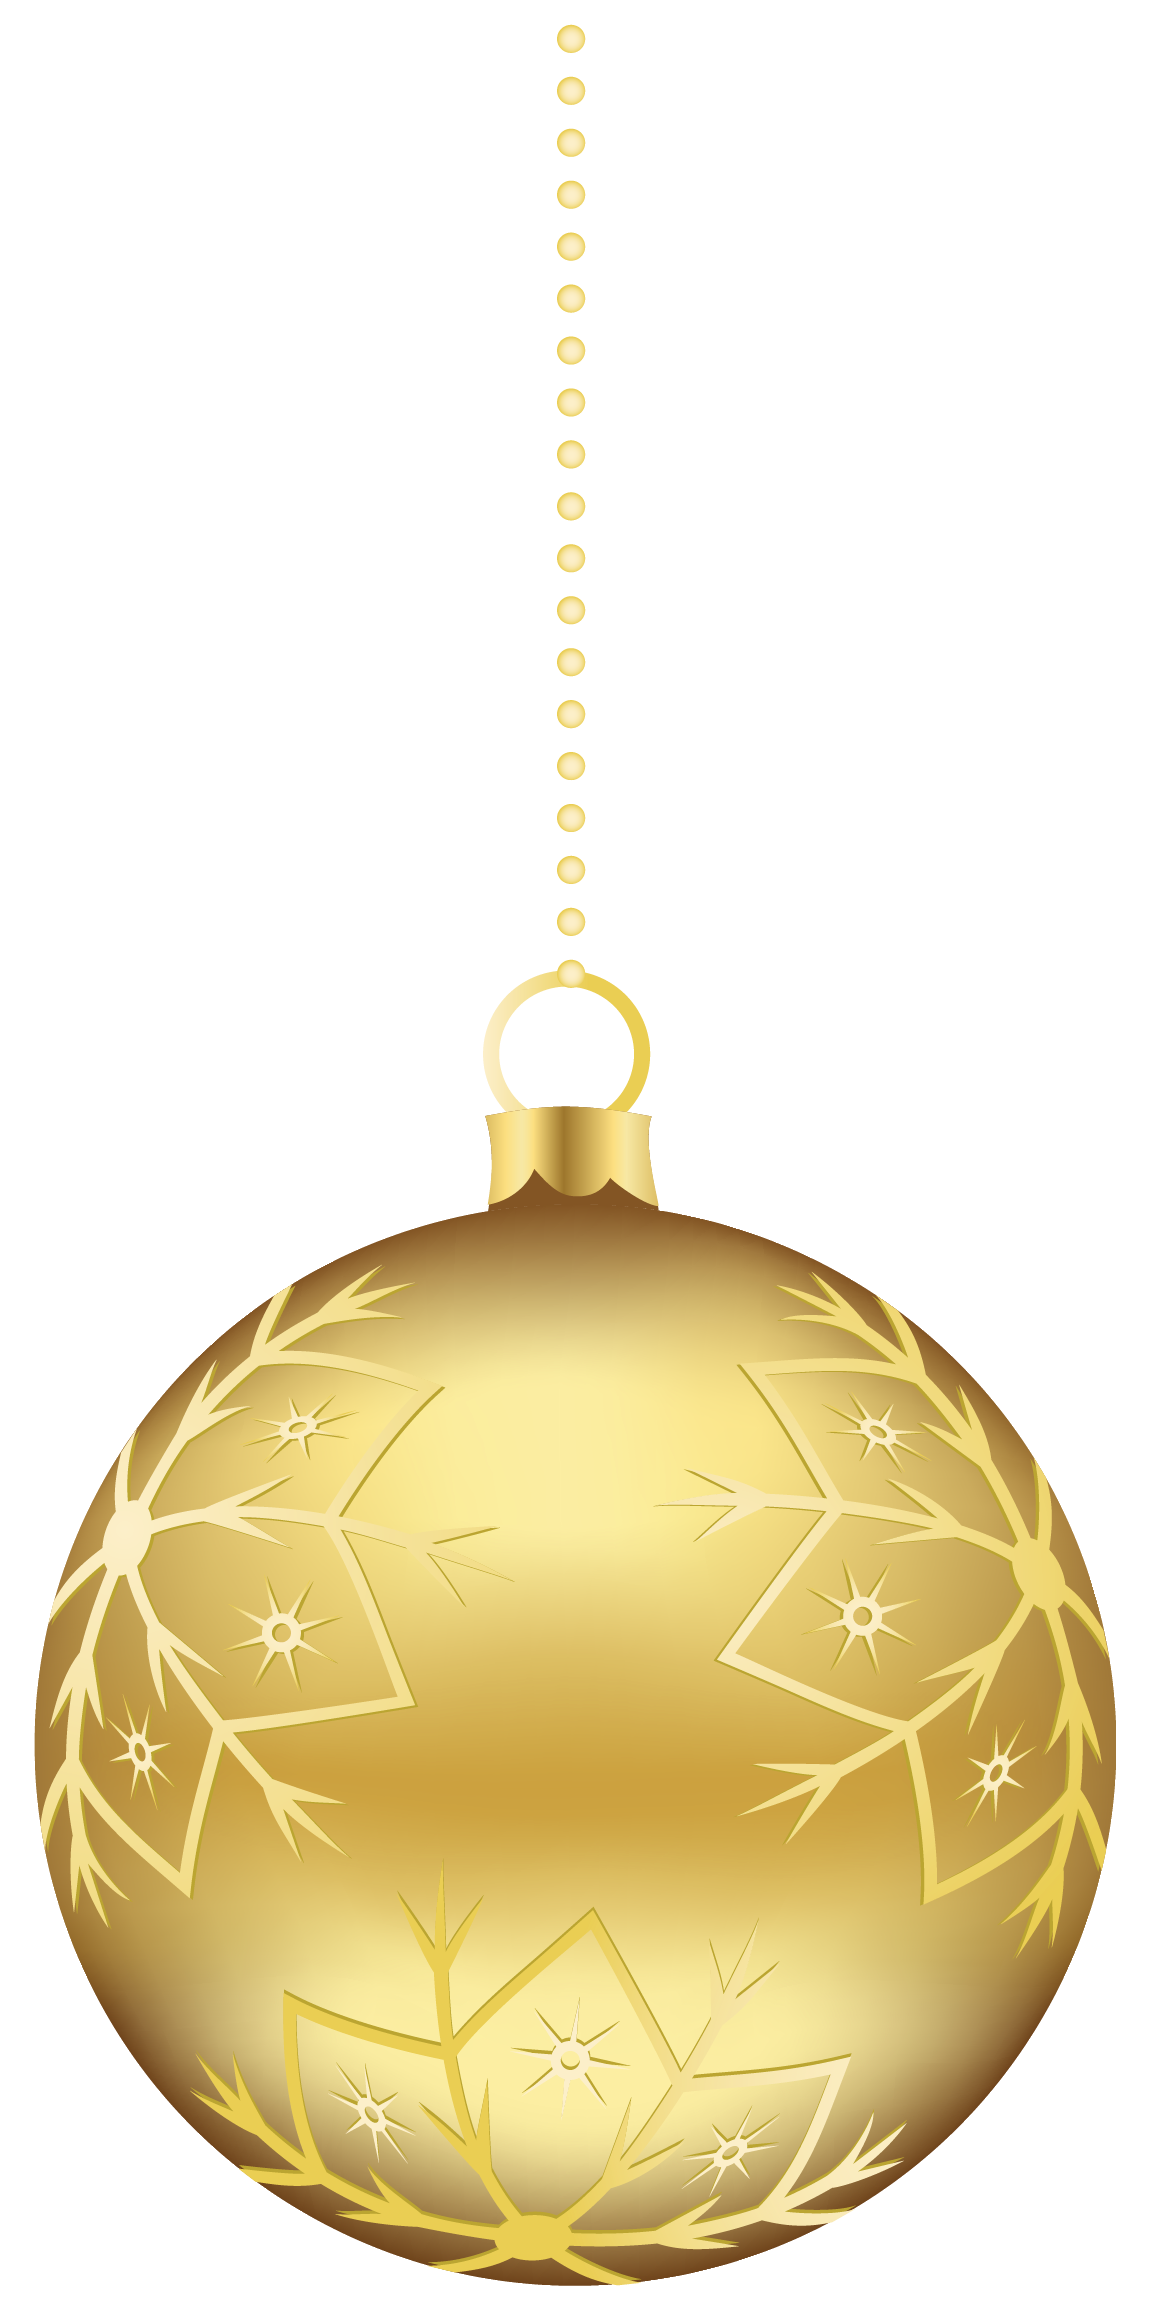 Gold Christmas Ornament Clipart.